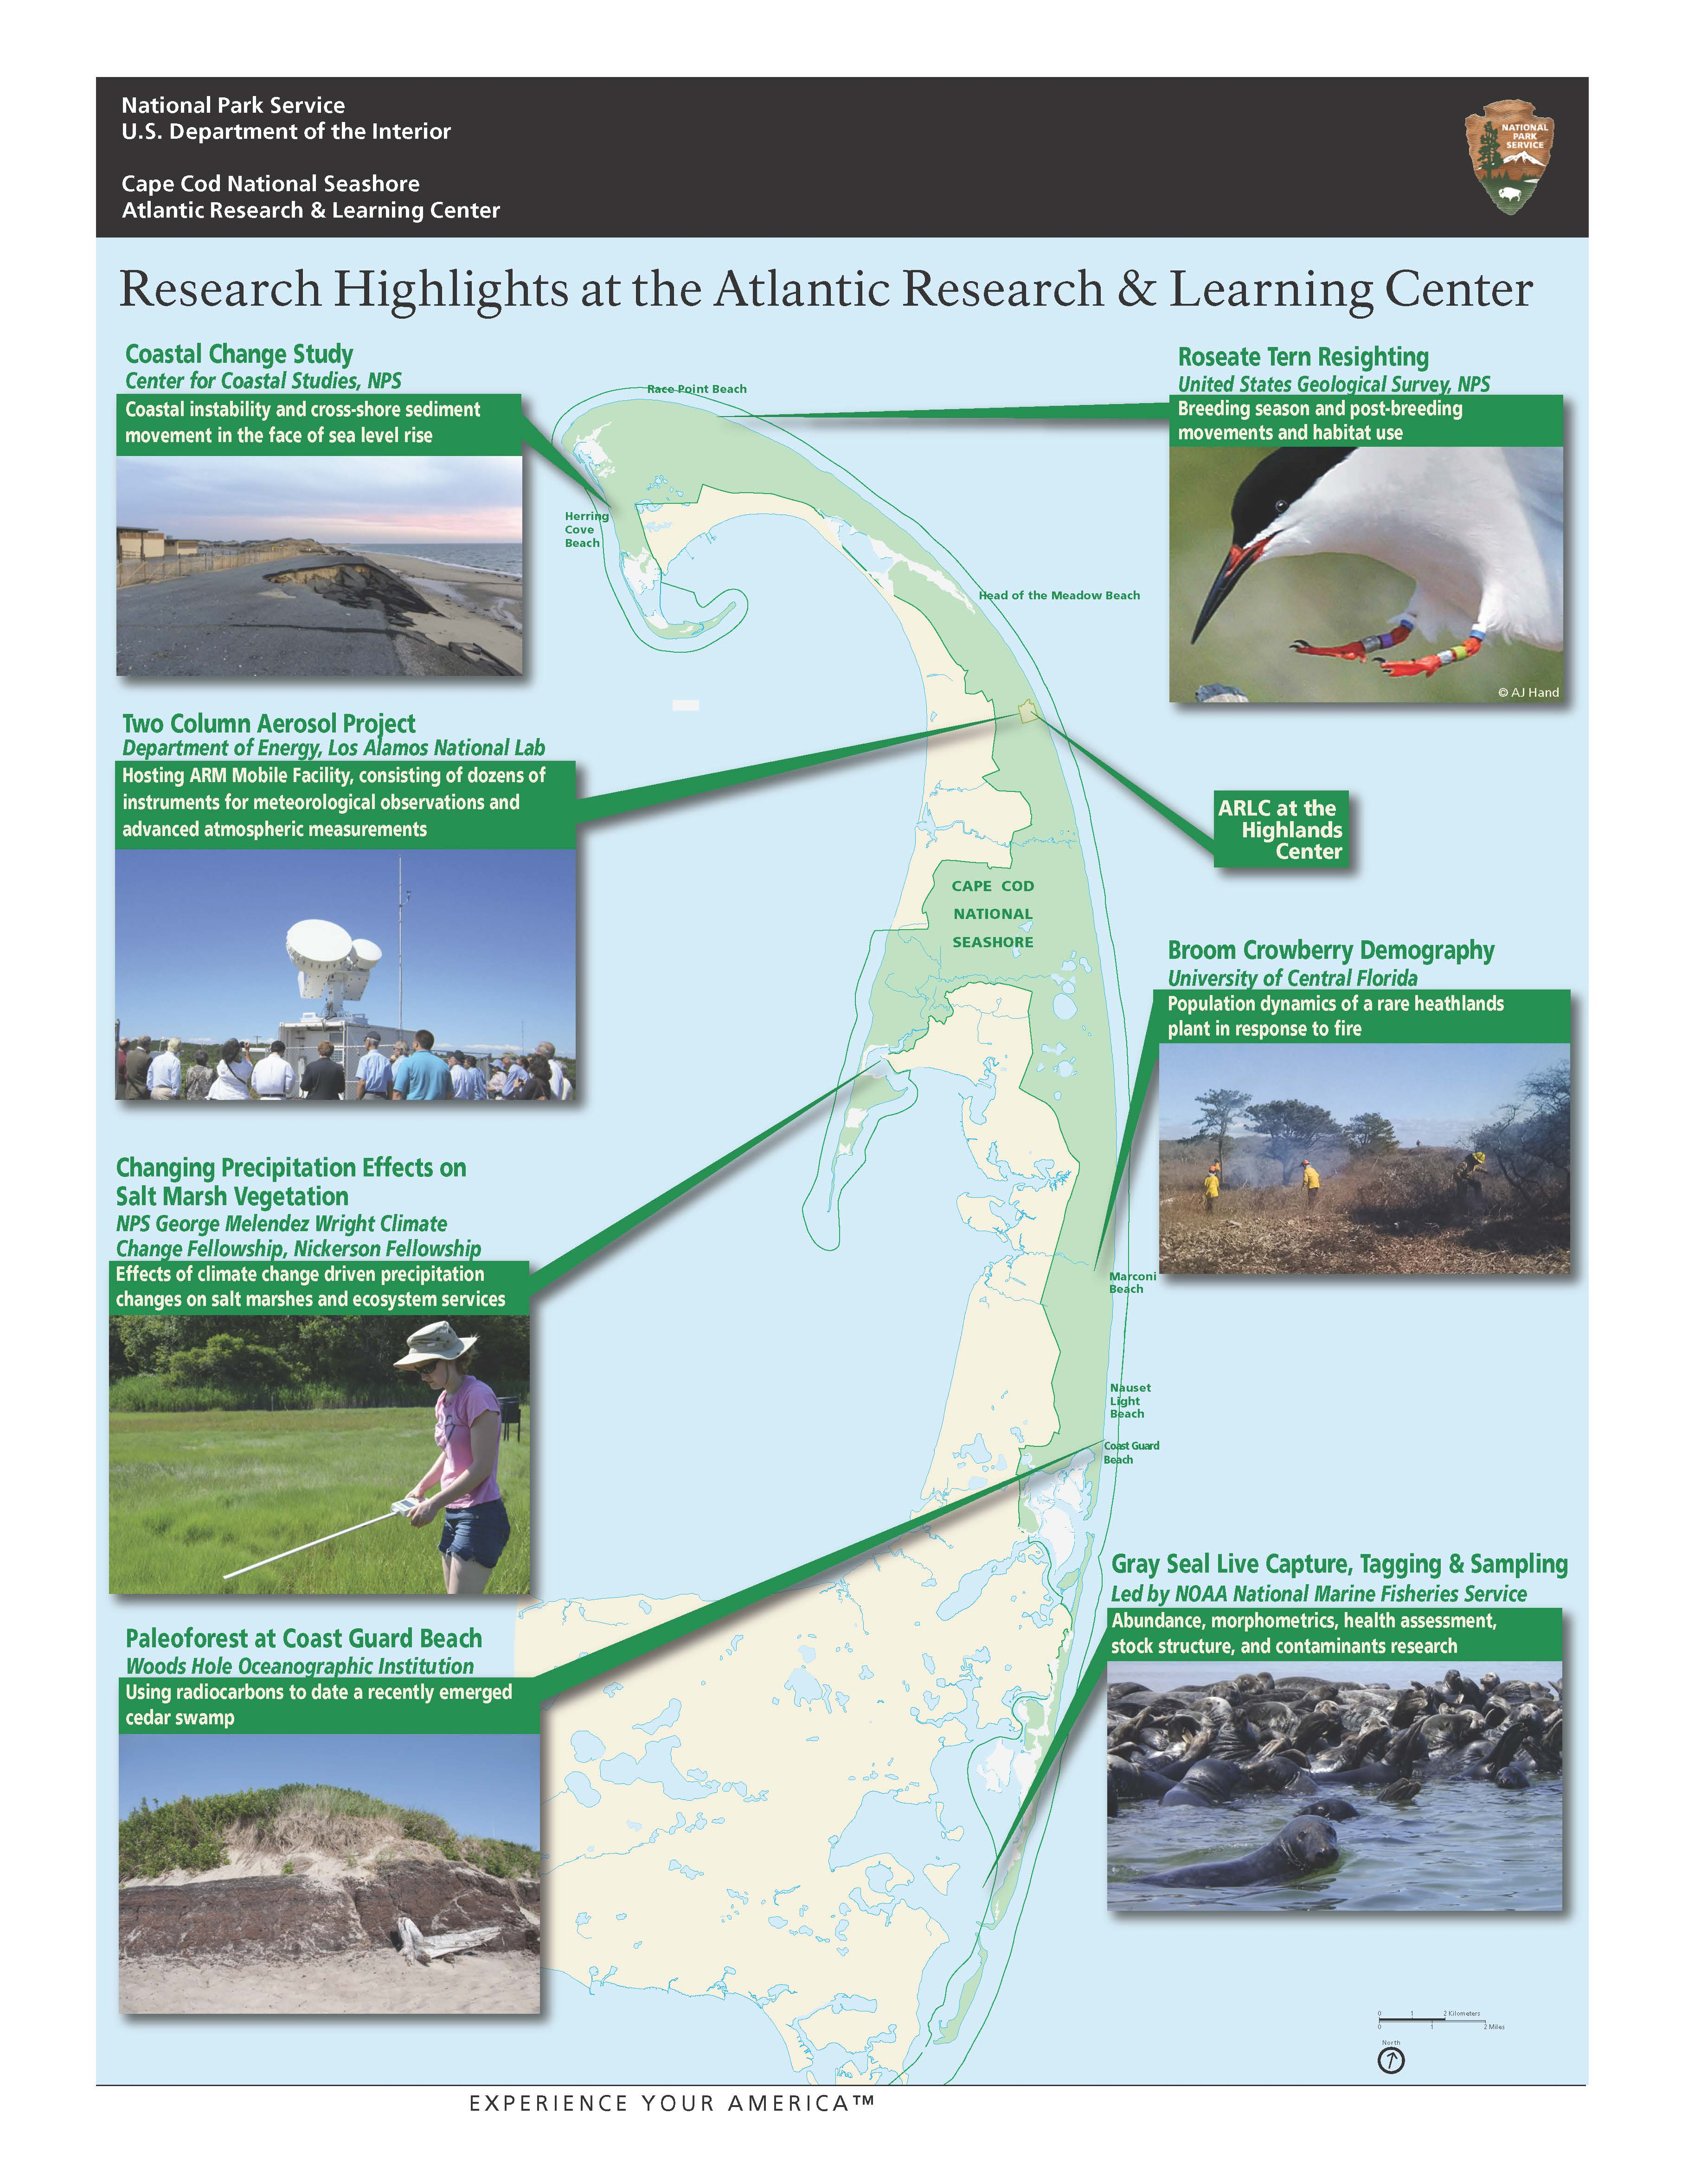 ARLC Research Projects - Cape Cod National Seas (U.S. National ... on